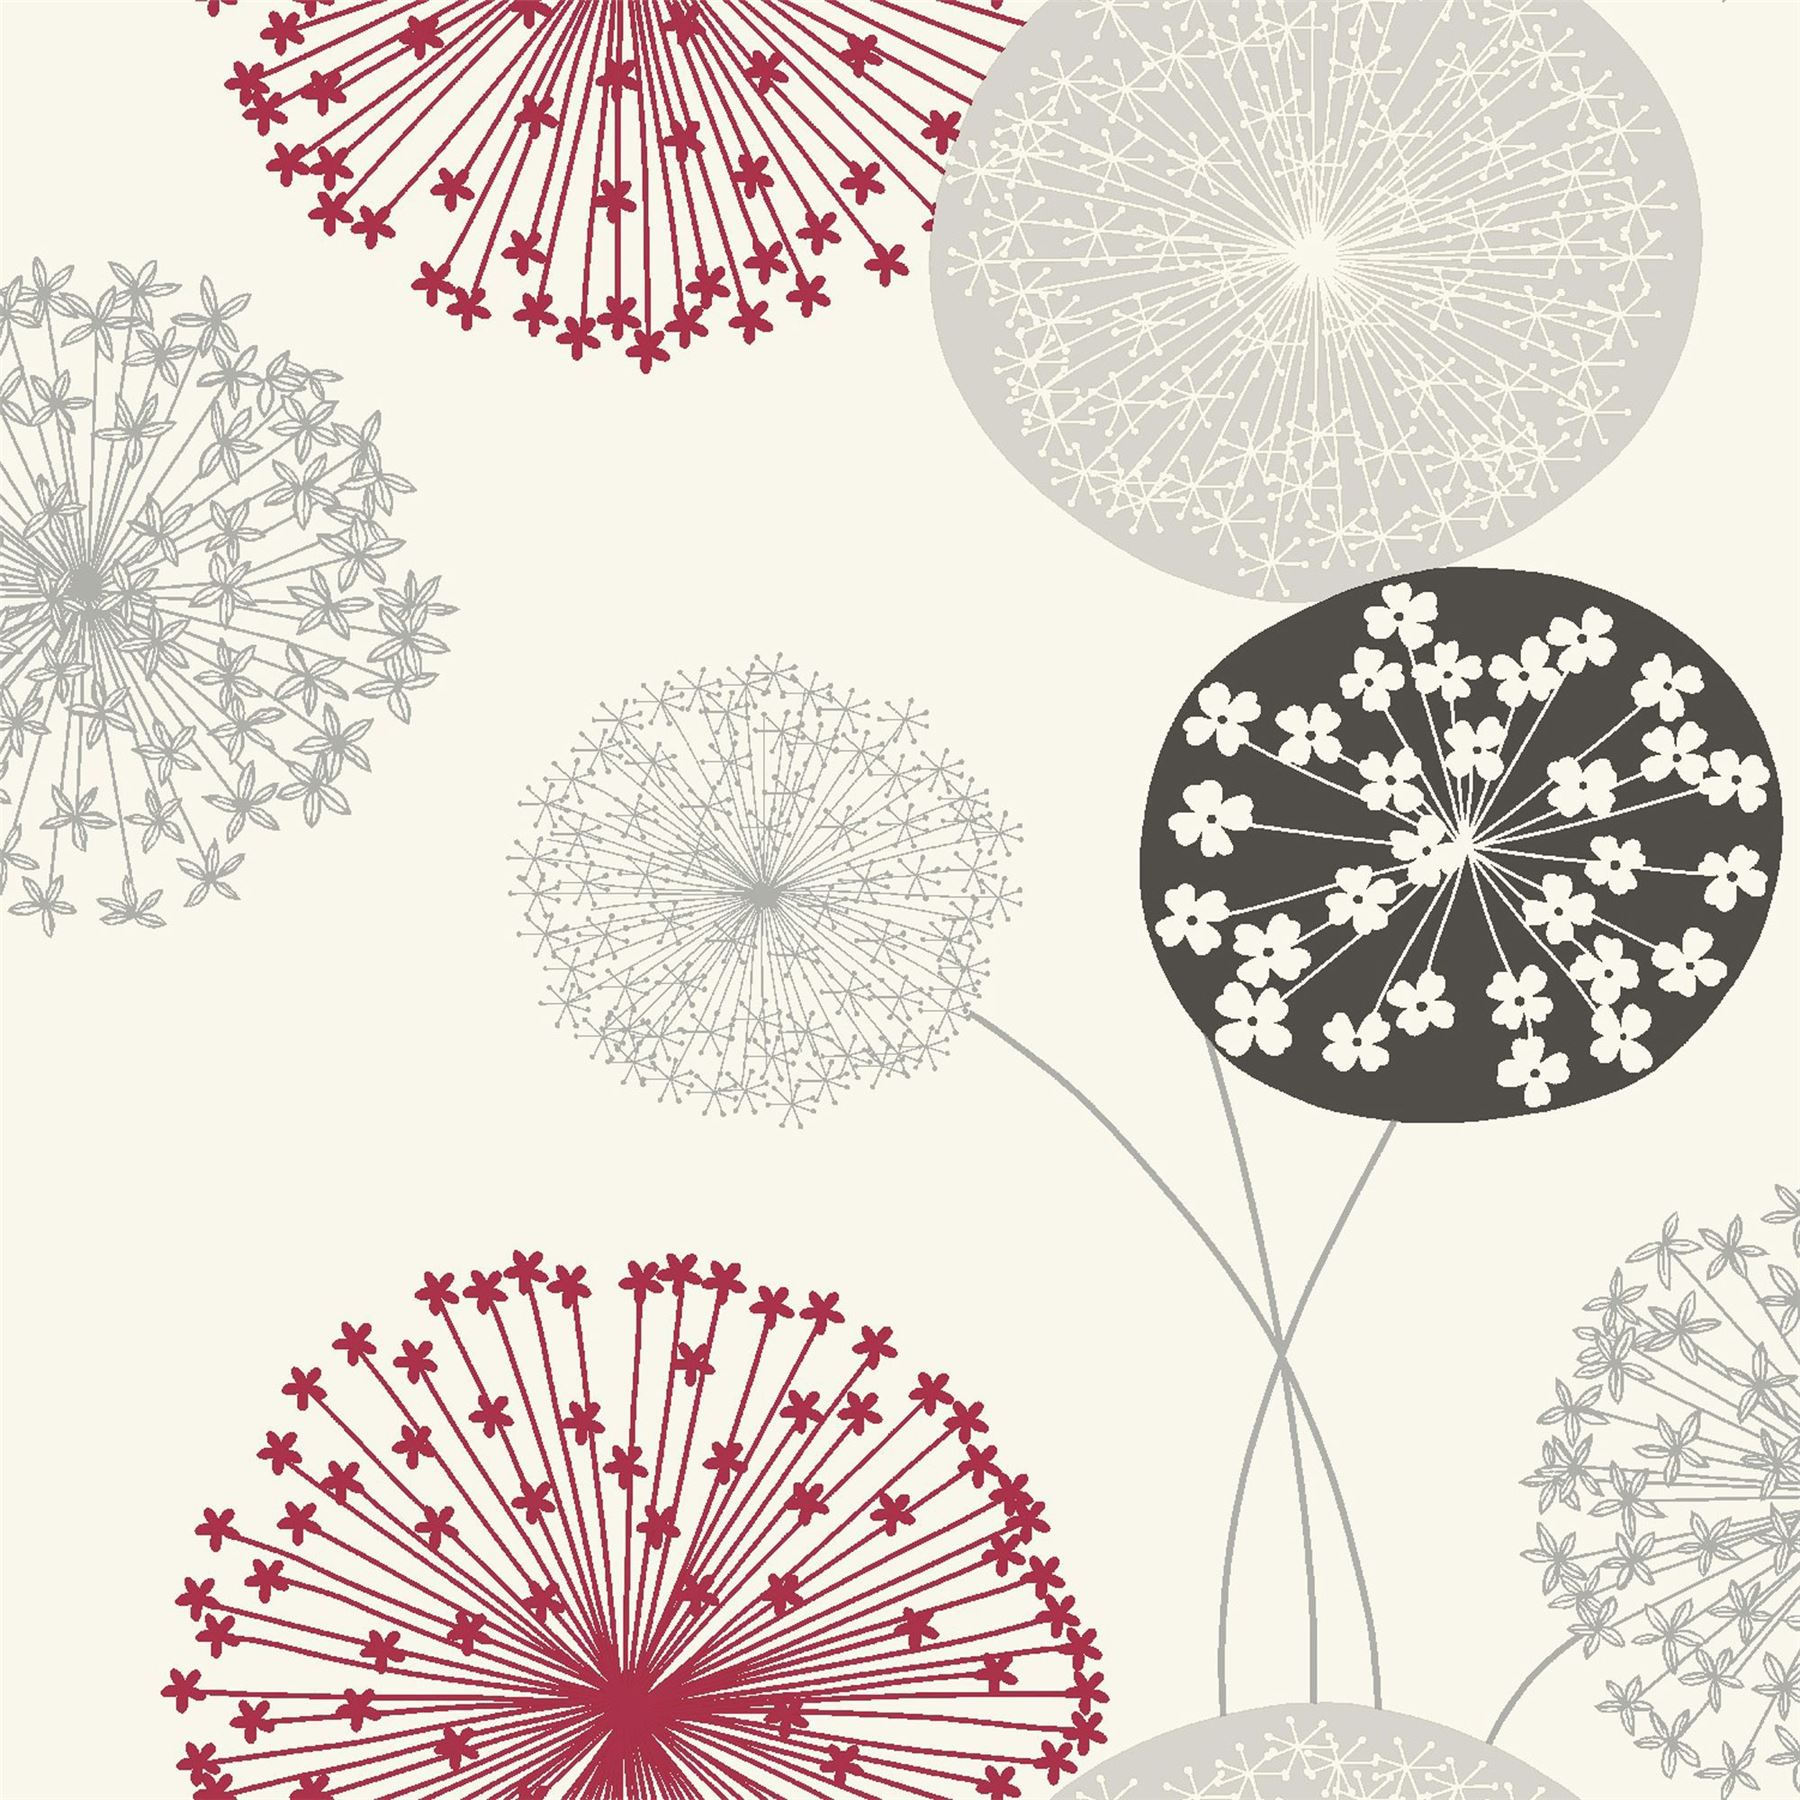 Details About Large Dandelion Floral Wallpaper Flowers Cream Red Grey Black Feature Wall